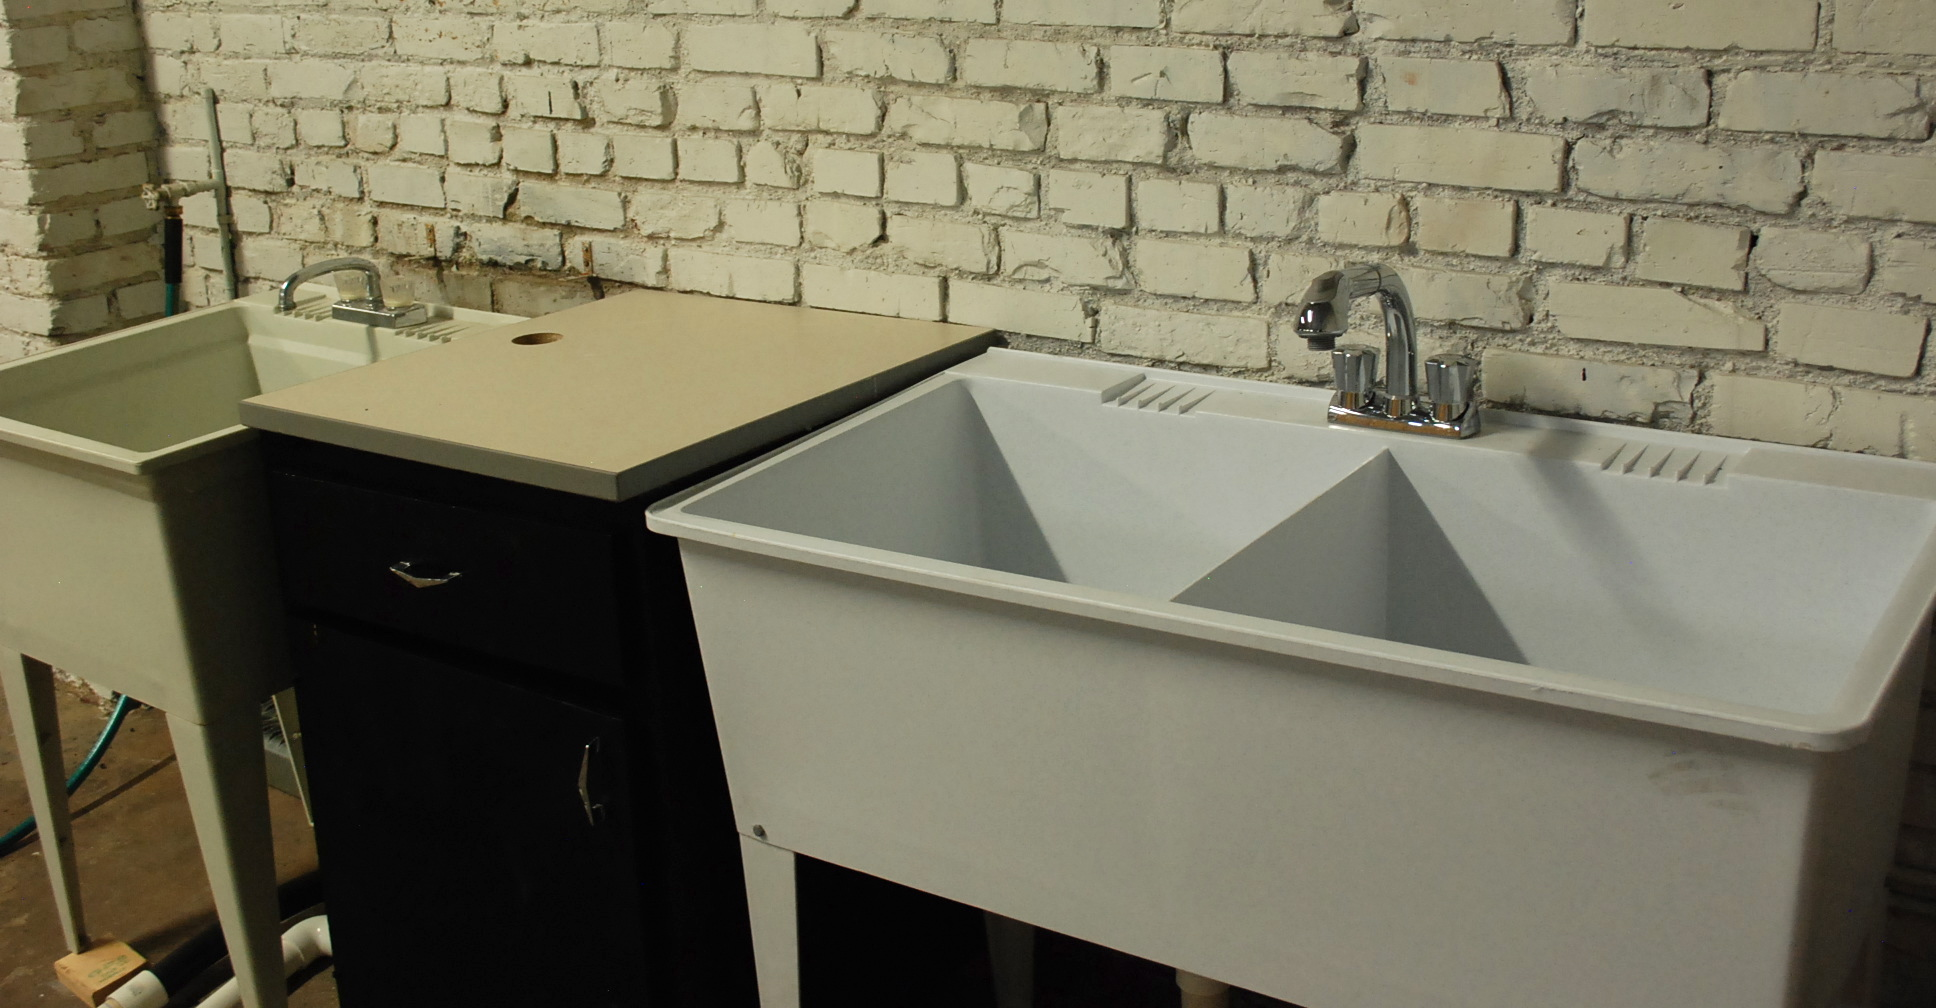 ... The Process Of Renovating The Space, But So Far They Have Over Head  Fluorescent Lighting, Electrical Outlet Access To Every Studio And 2  Utility Sinks; ...